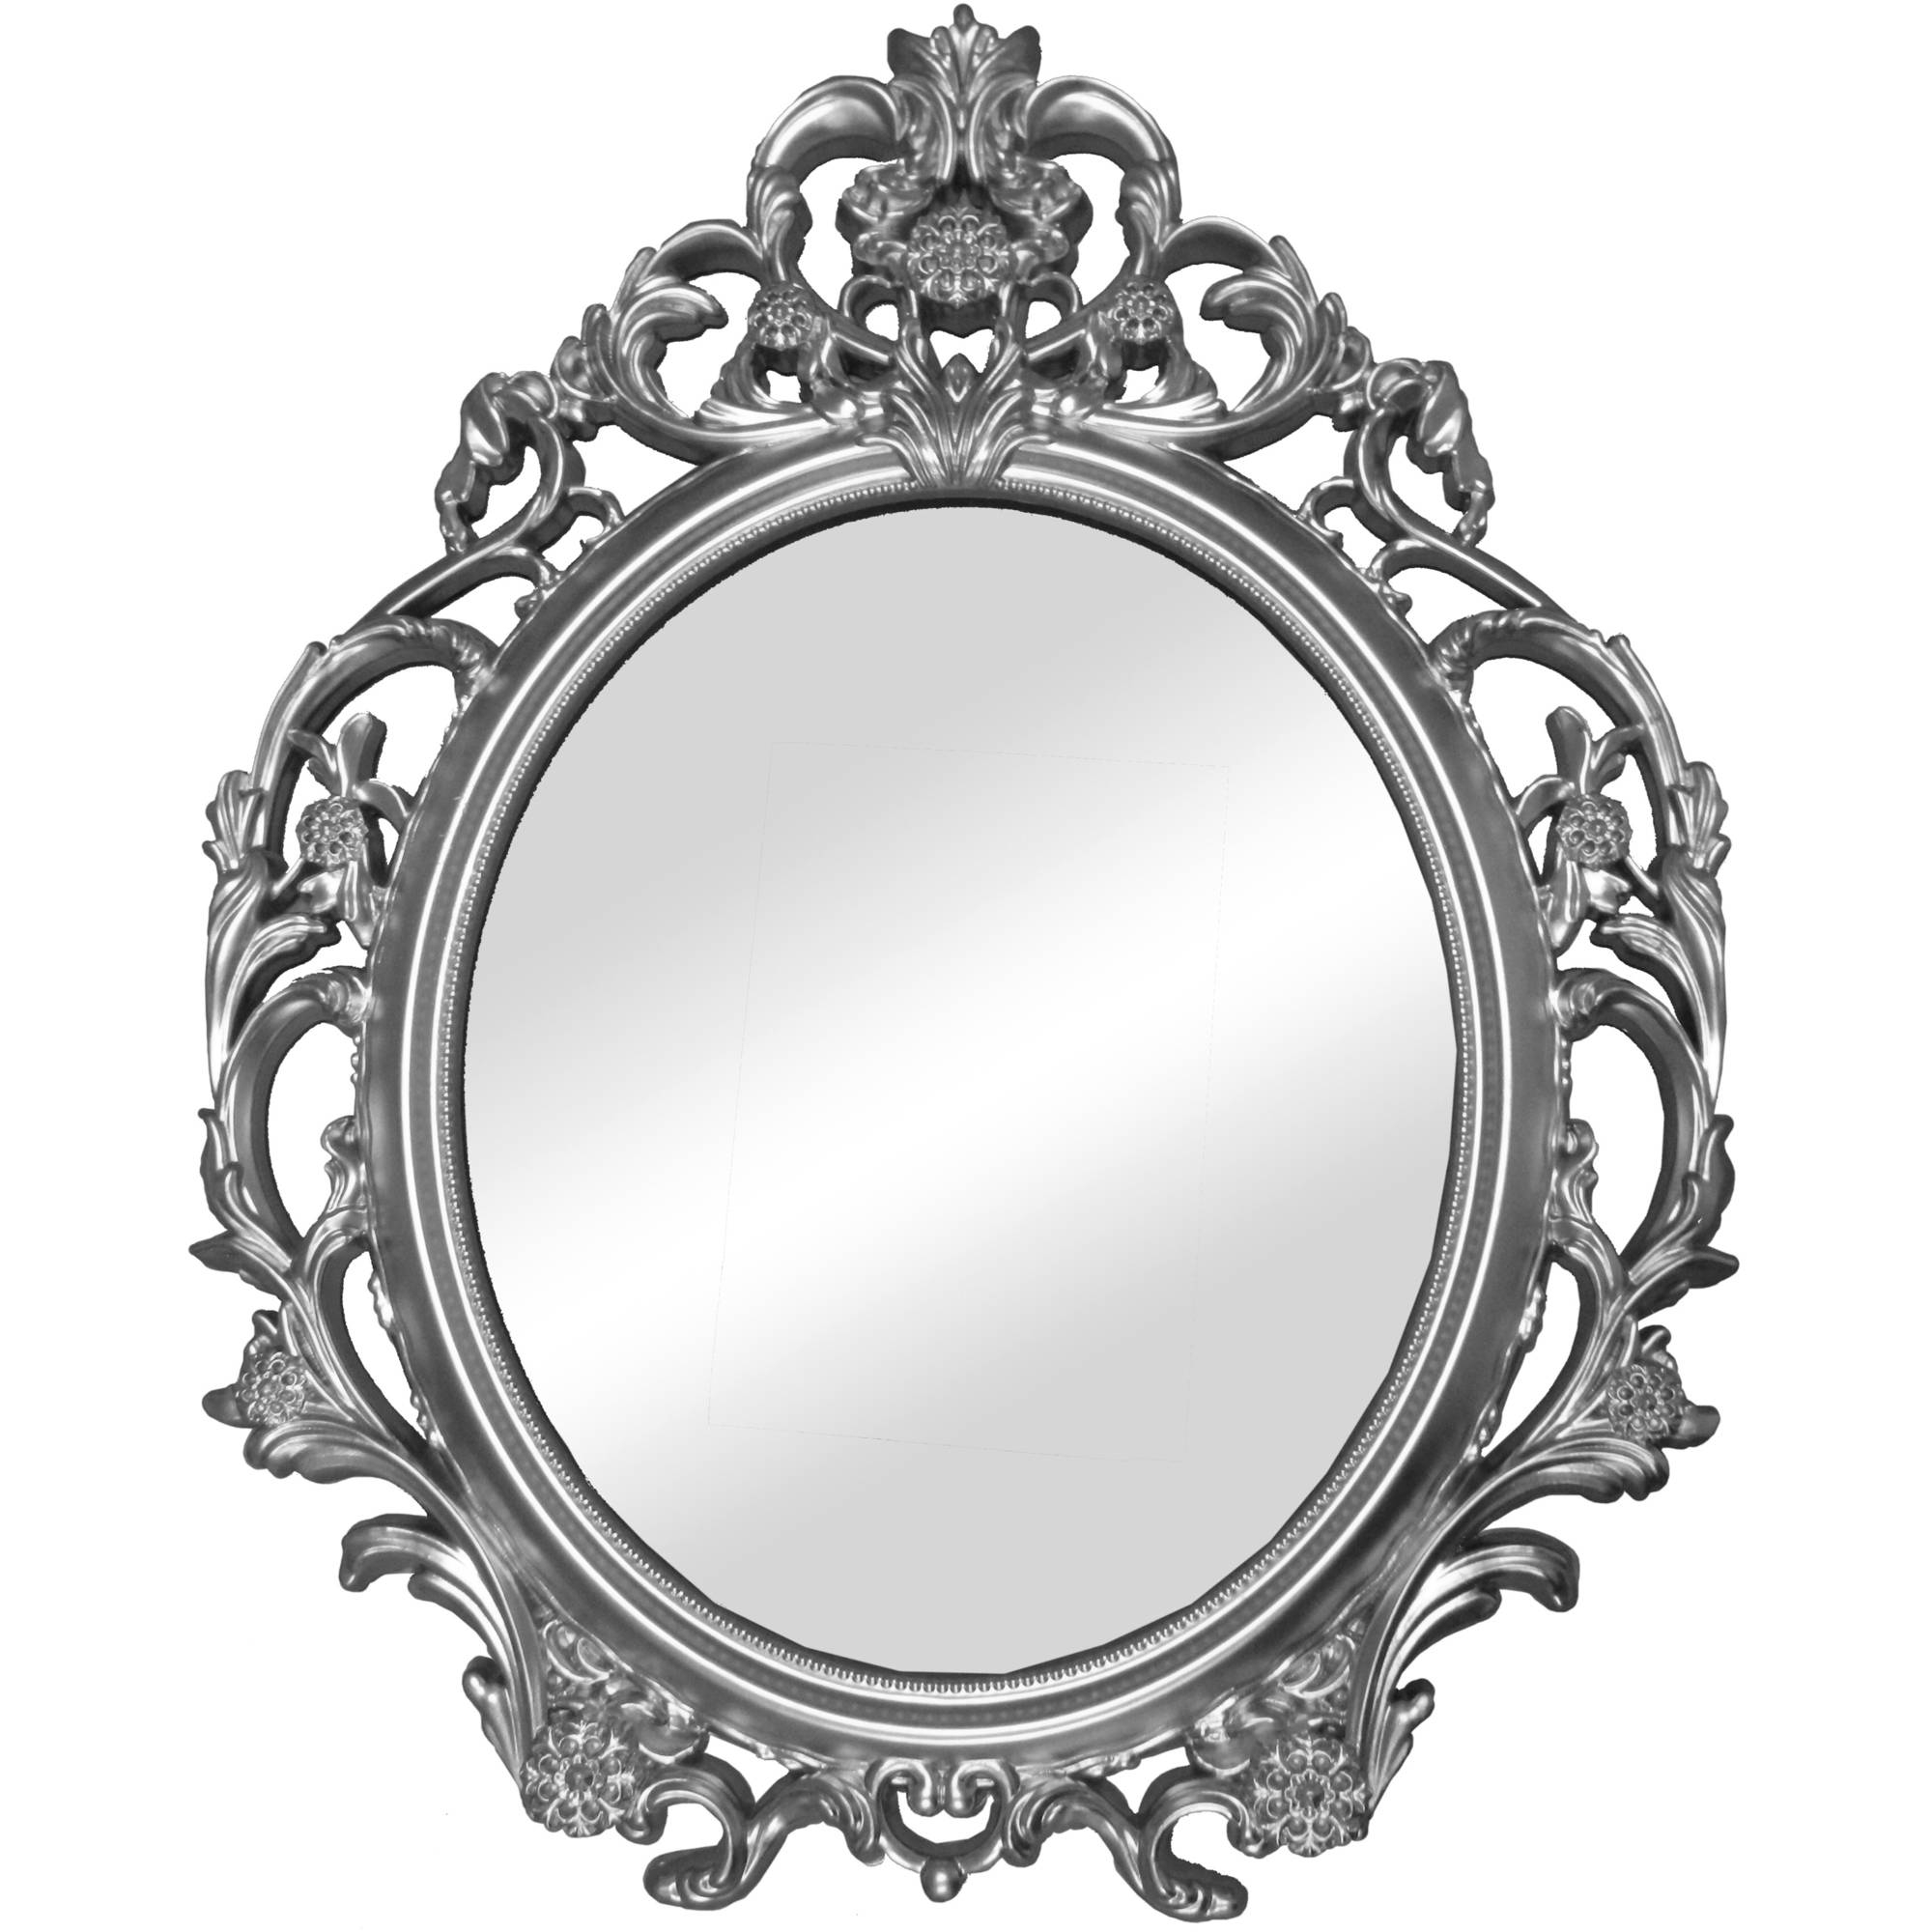 Better Homes And Gardens Baroque Wall Mirror Walmart With Baroque Mirrors (Image 4 of 15)